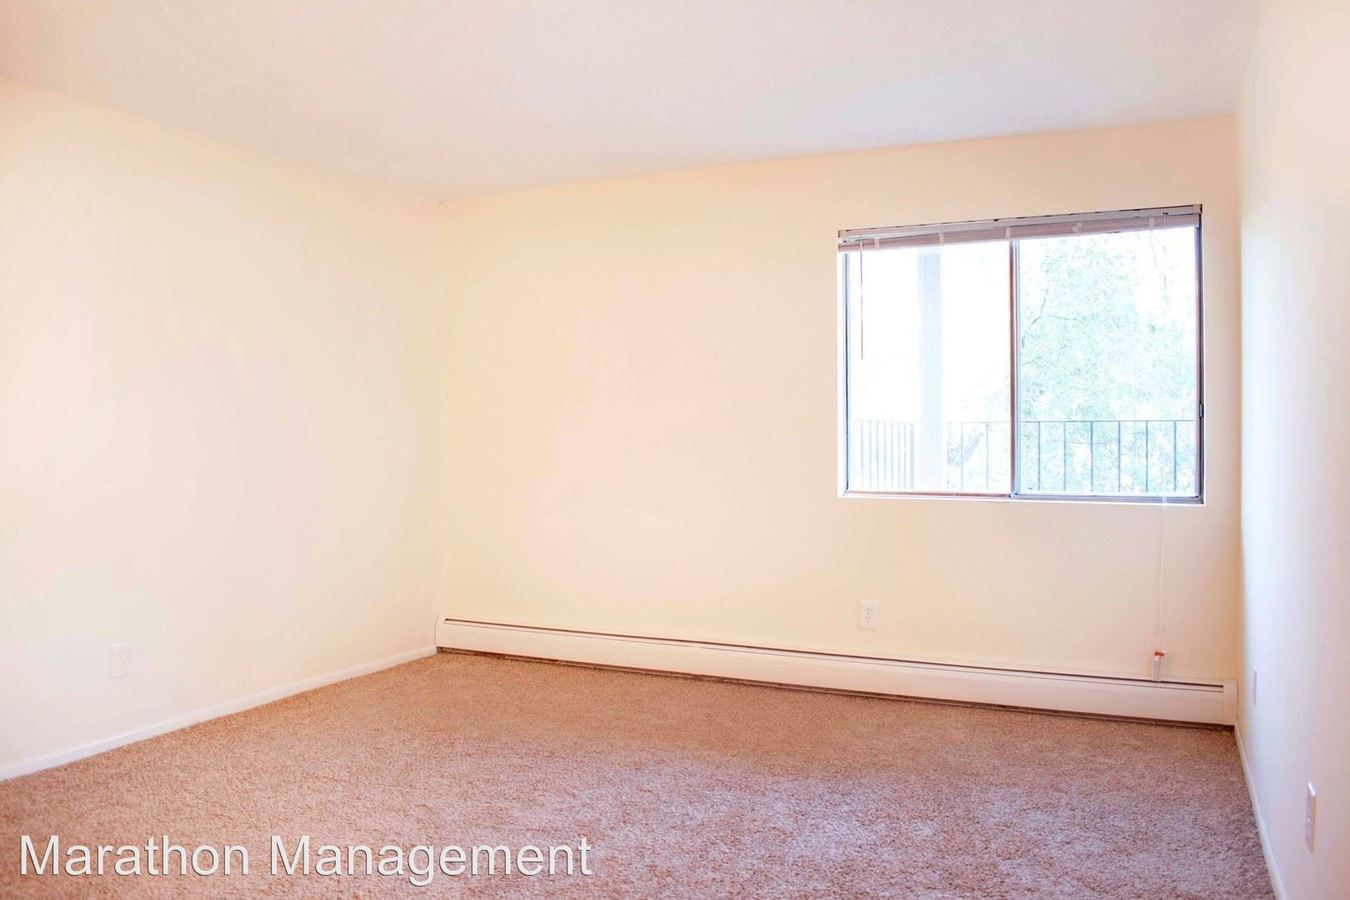 2 Bedrooms 1 Bathroom Apartment for rent at 135 Crosstown Boulevard #1 in Chaska, MN